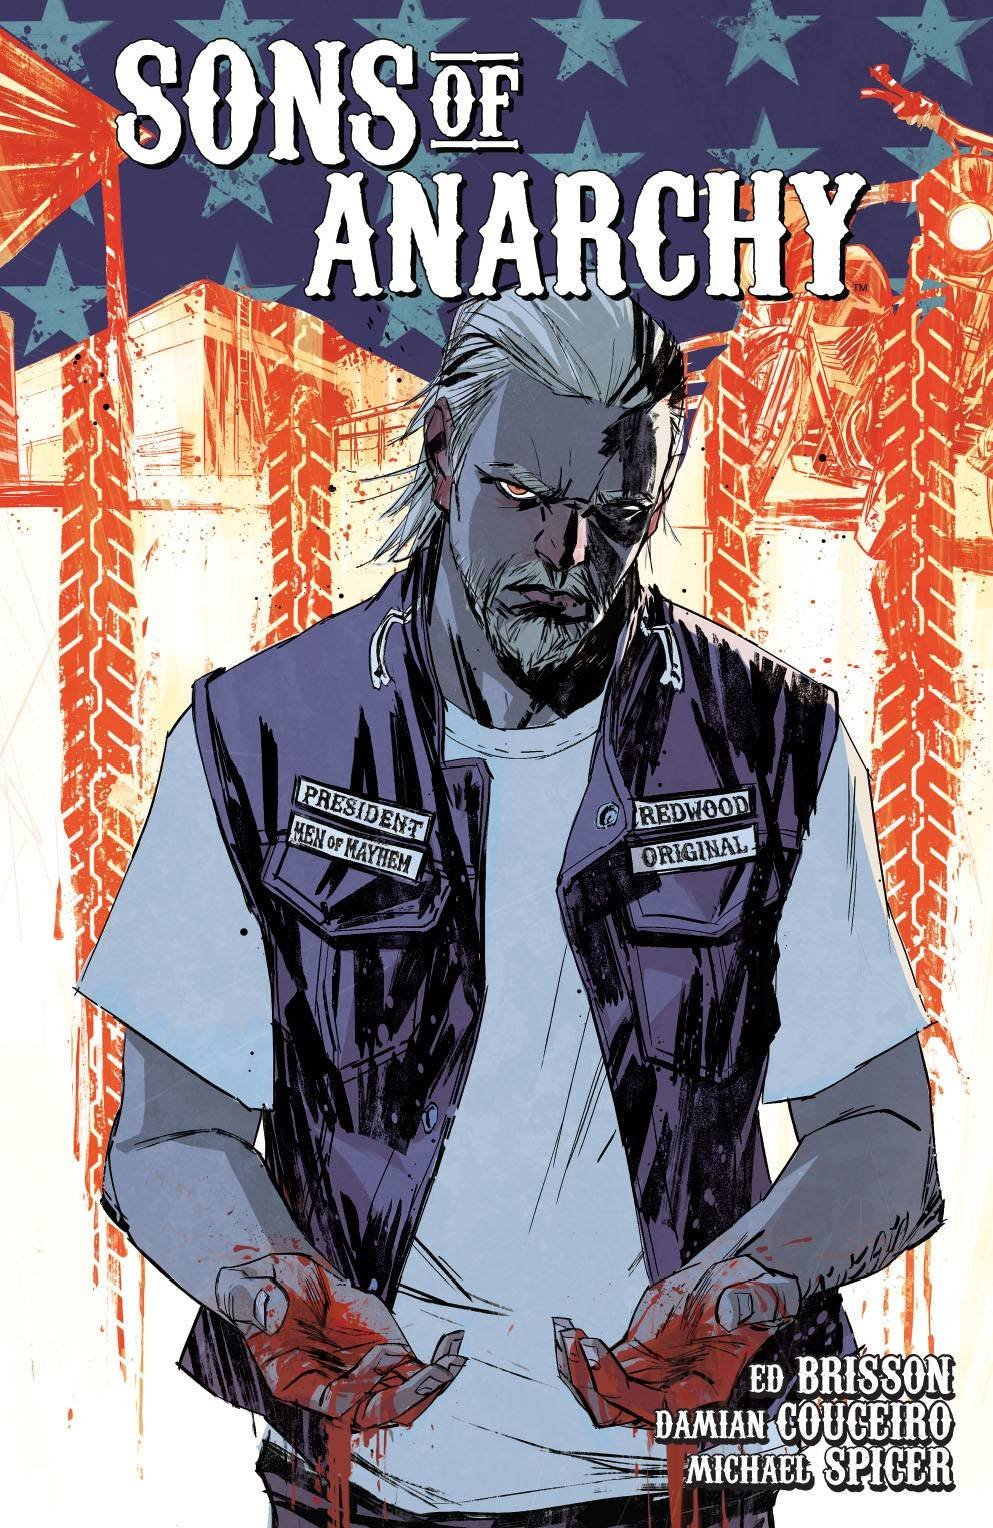 Sons of Anarchy Vol. 3 image